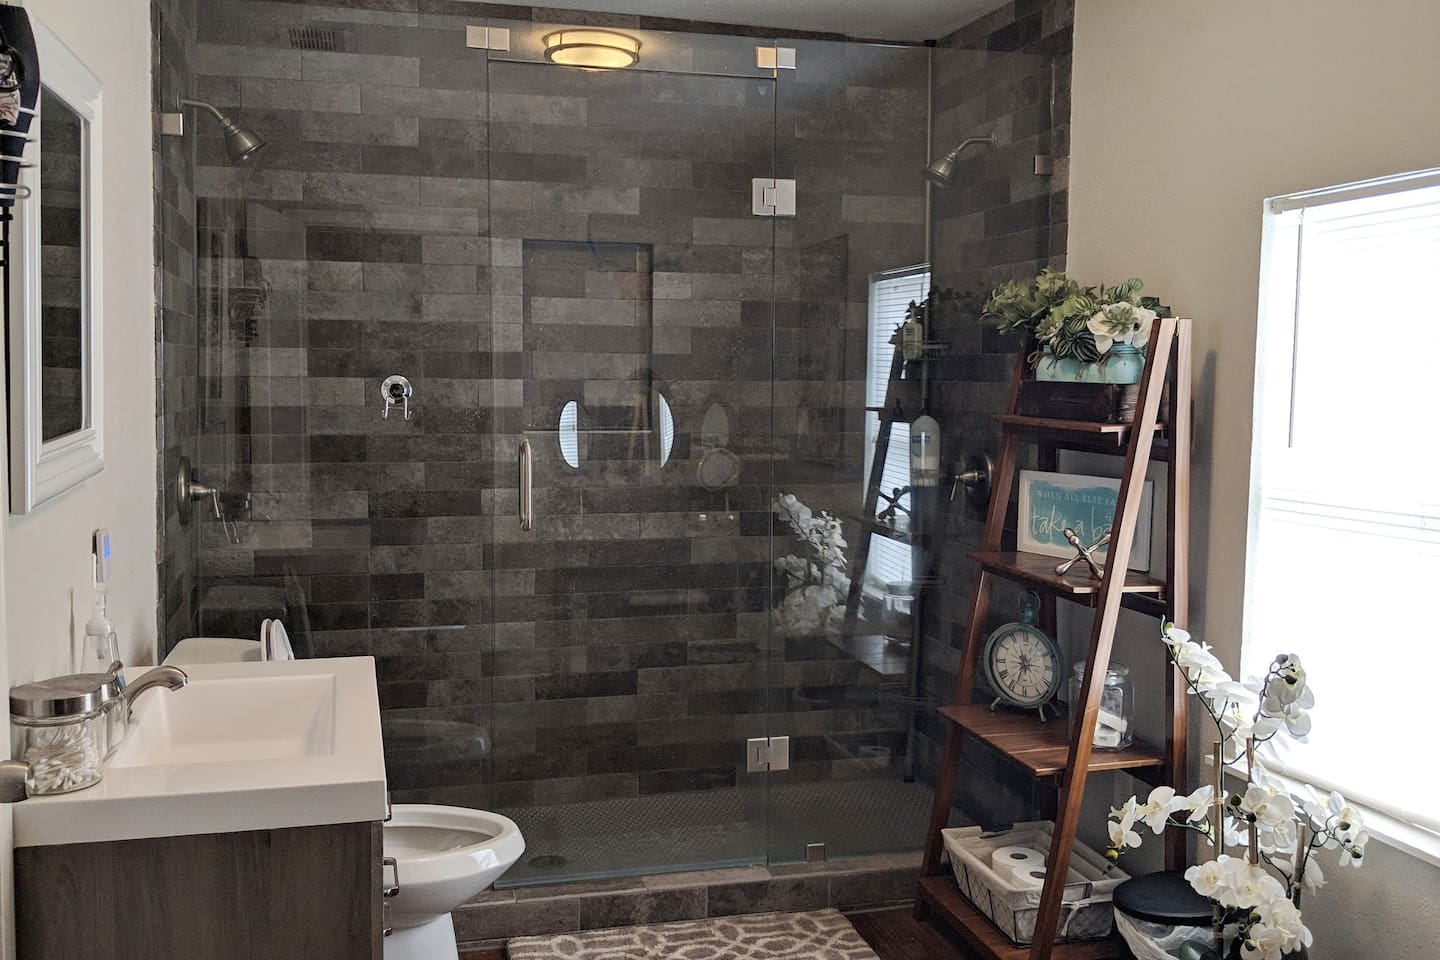 Large, beautifully renovated bathroom with dual-head stand up shower!!